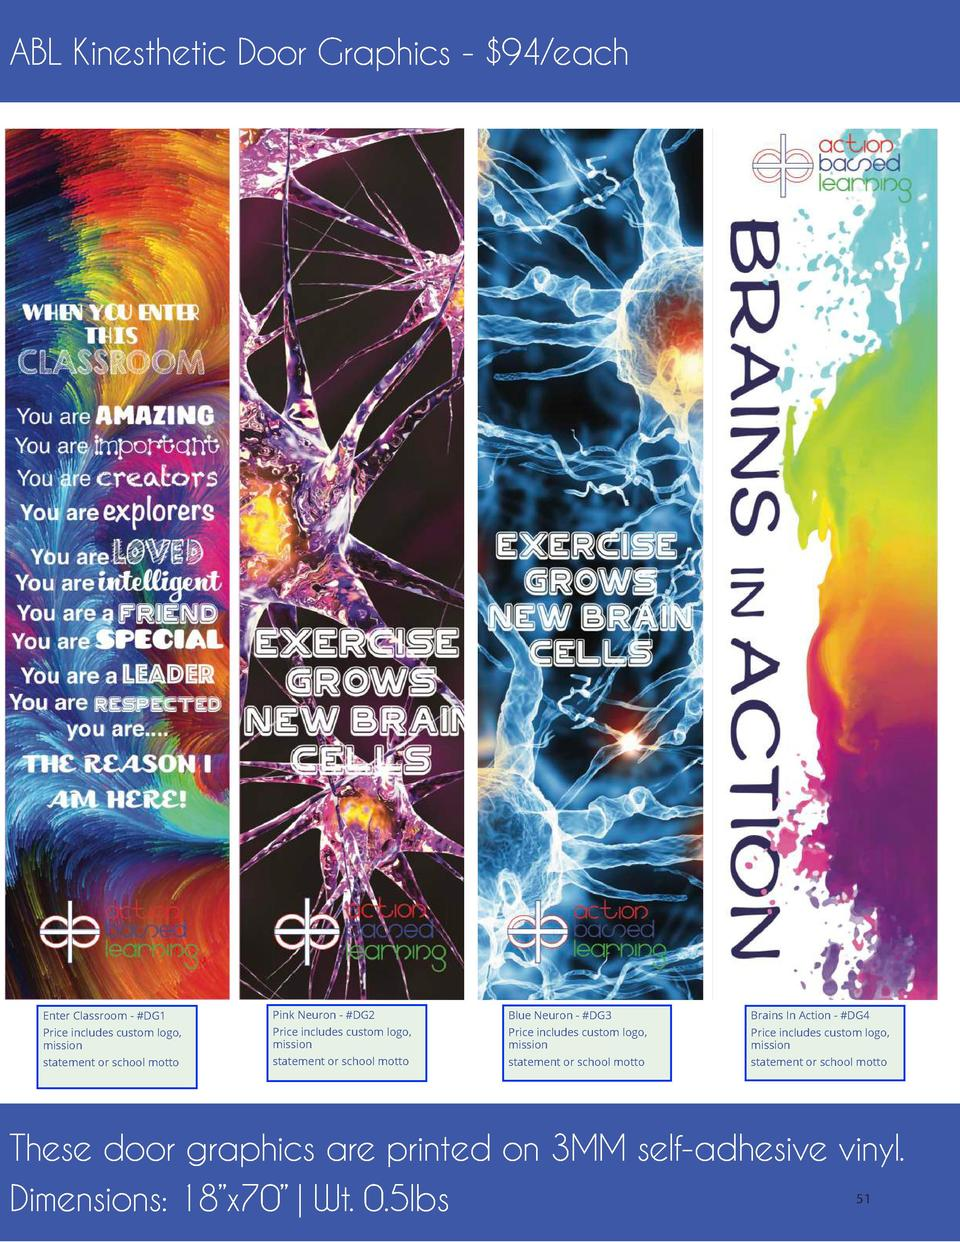 ABL Kinesthetic Door Graphics -  94 each  Enter Classroom -  DG1  Pink Neuron -  DG2  Blue Neuron -  DG3  Brains In Action...